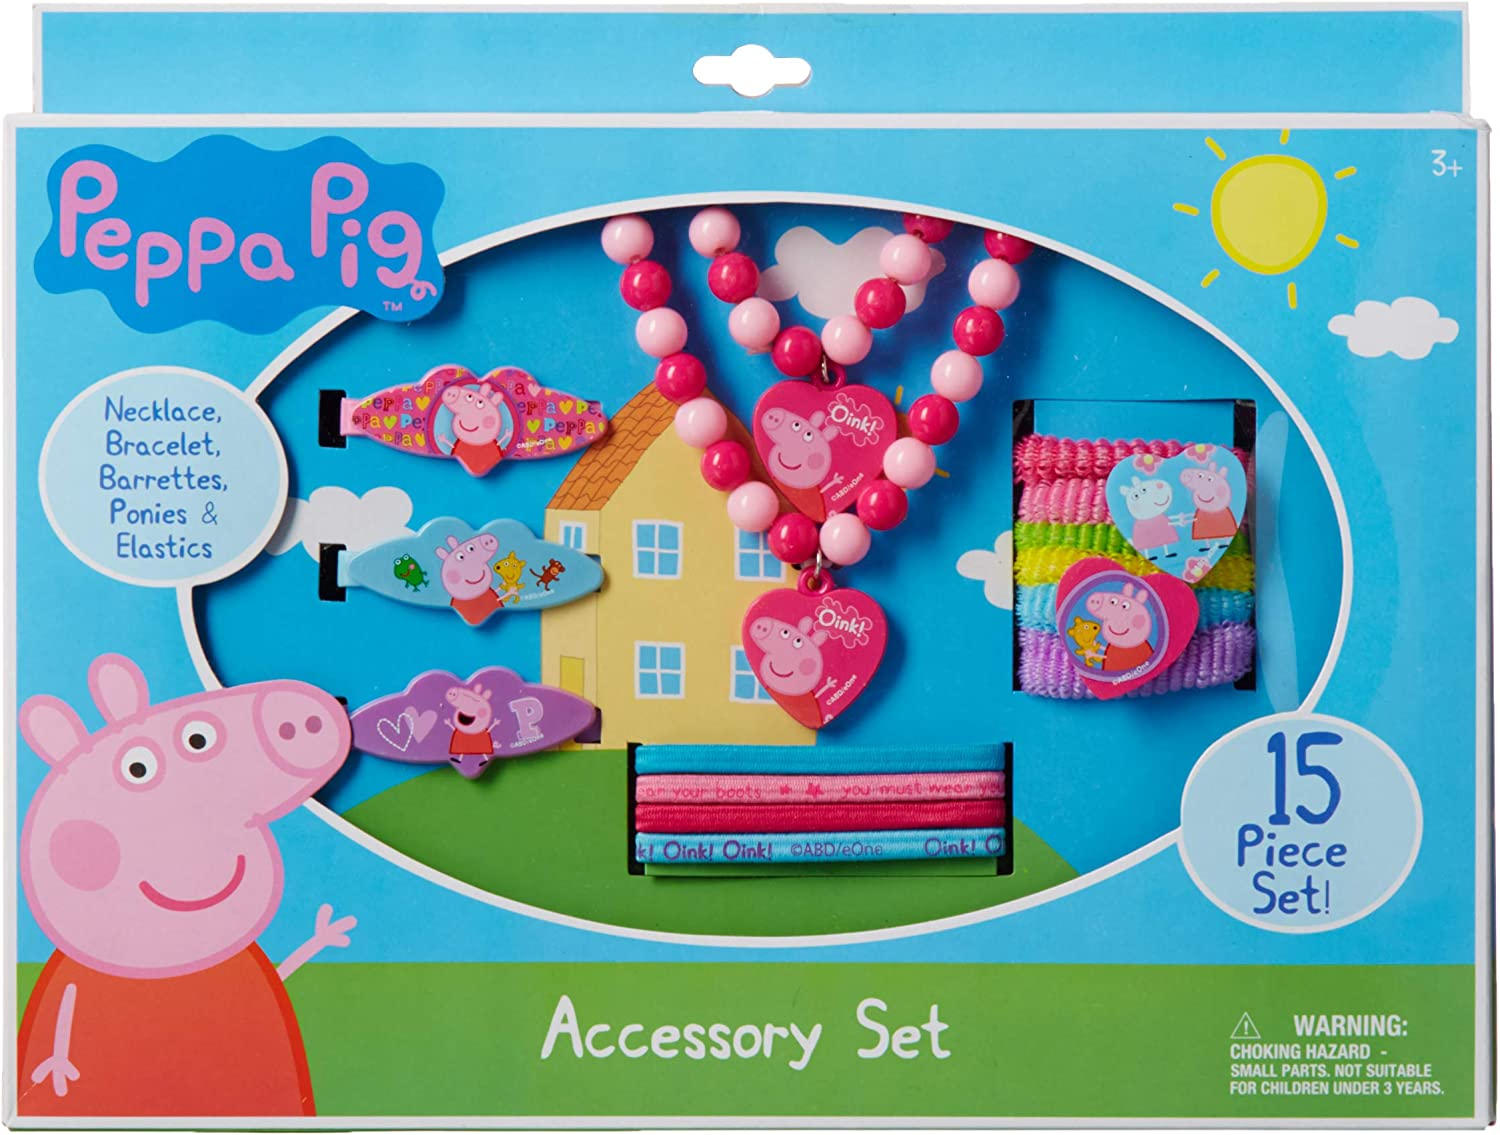 Pink Peppa Pig Necklace Bracelet and Hair Accessory Set 15 Piece